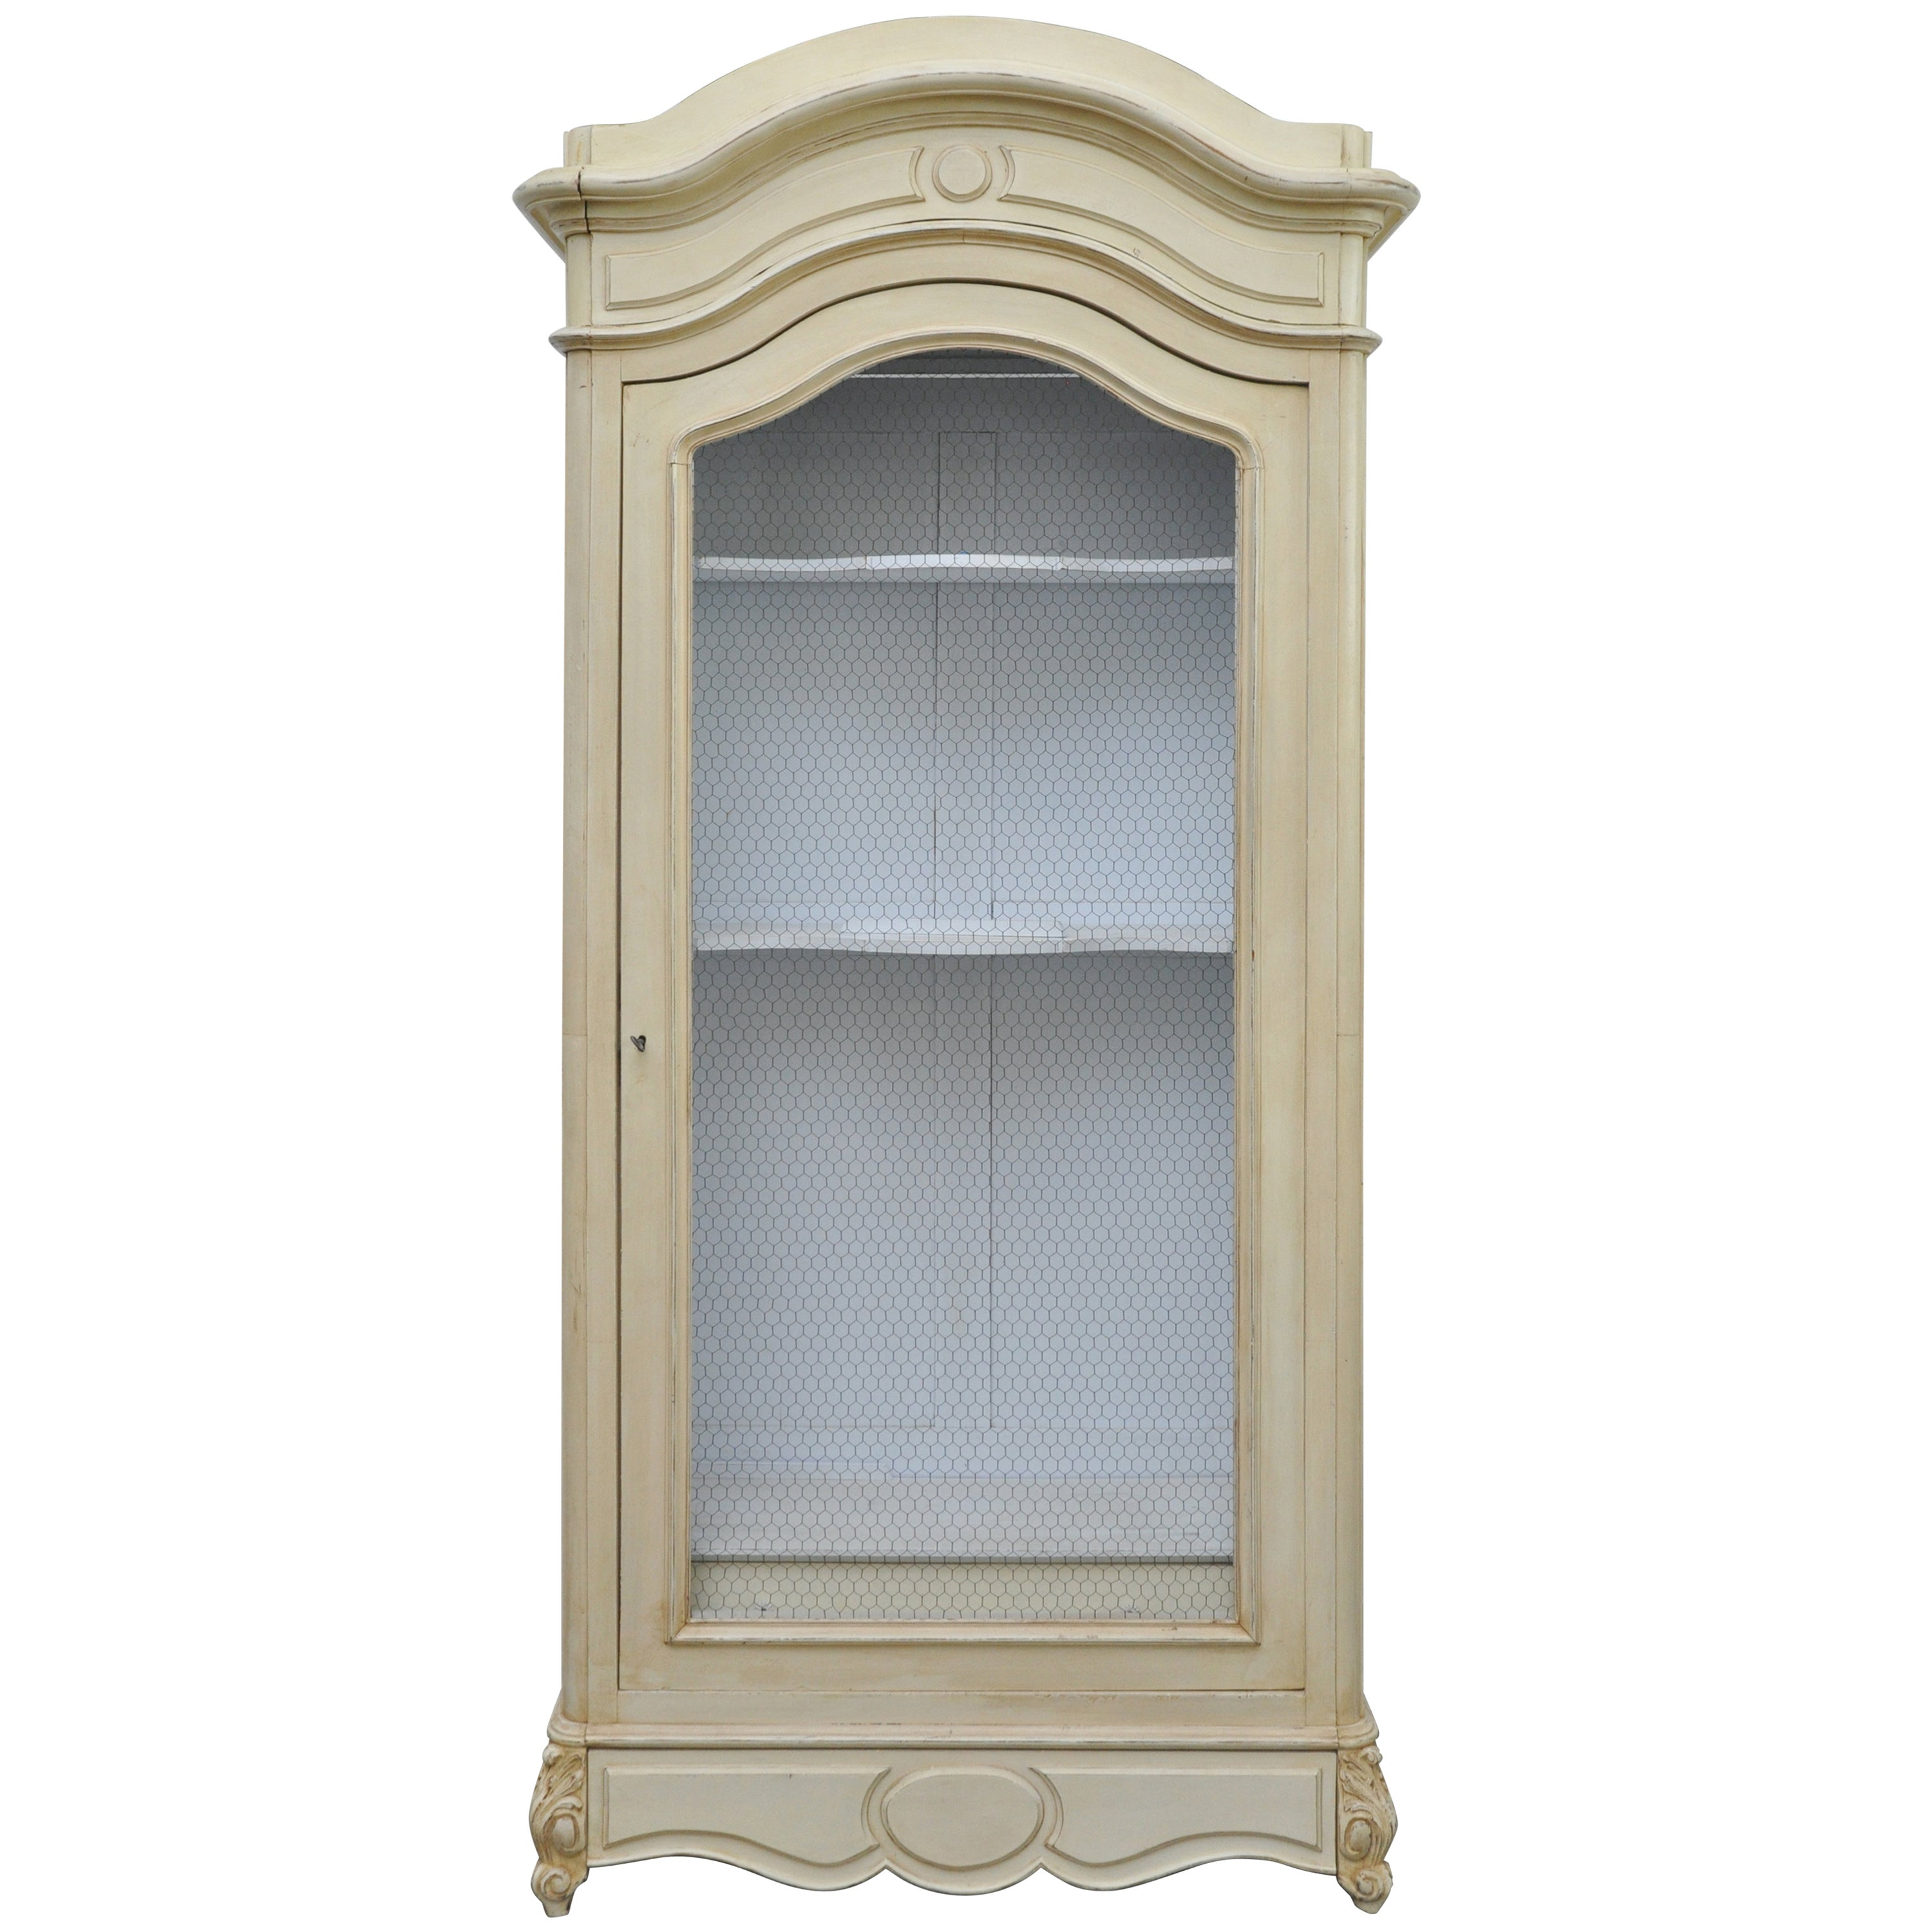 19th Century French Neoclassical Cabinet For Sale at 1stdibs